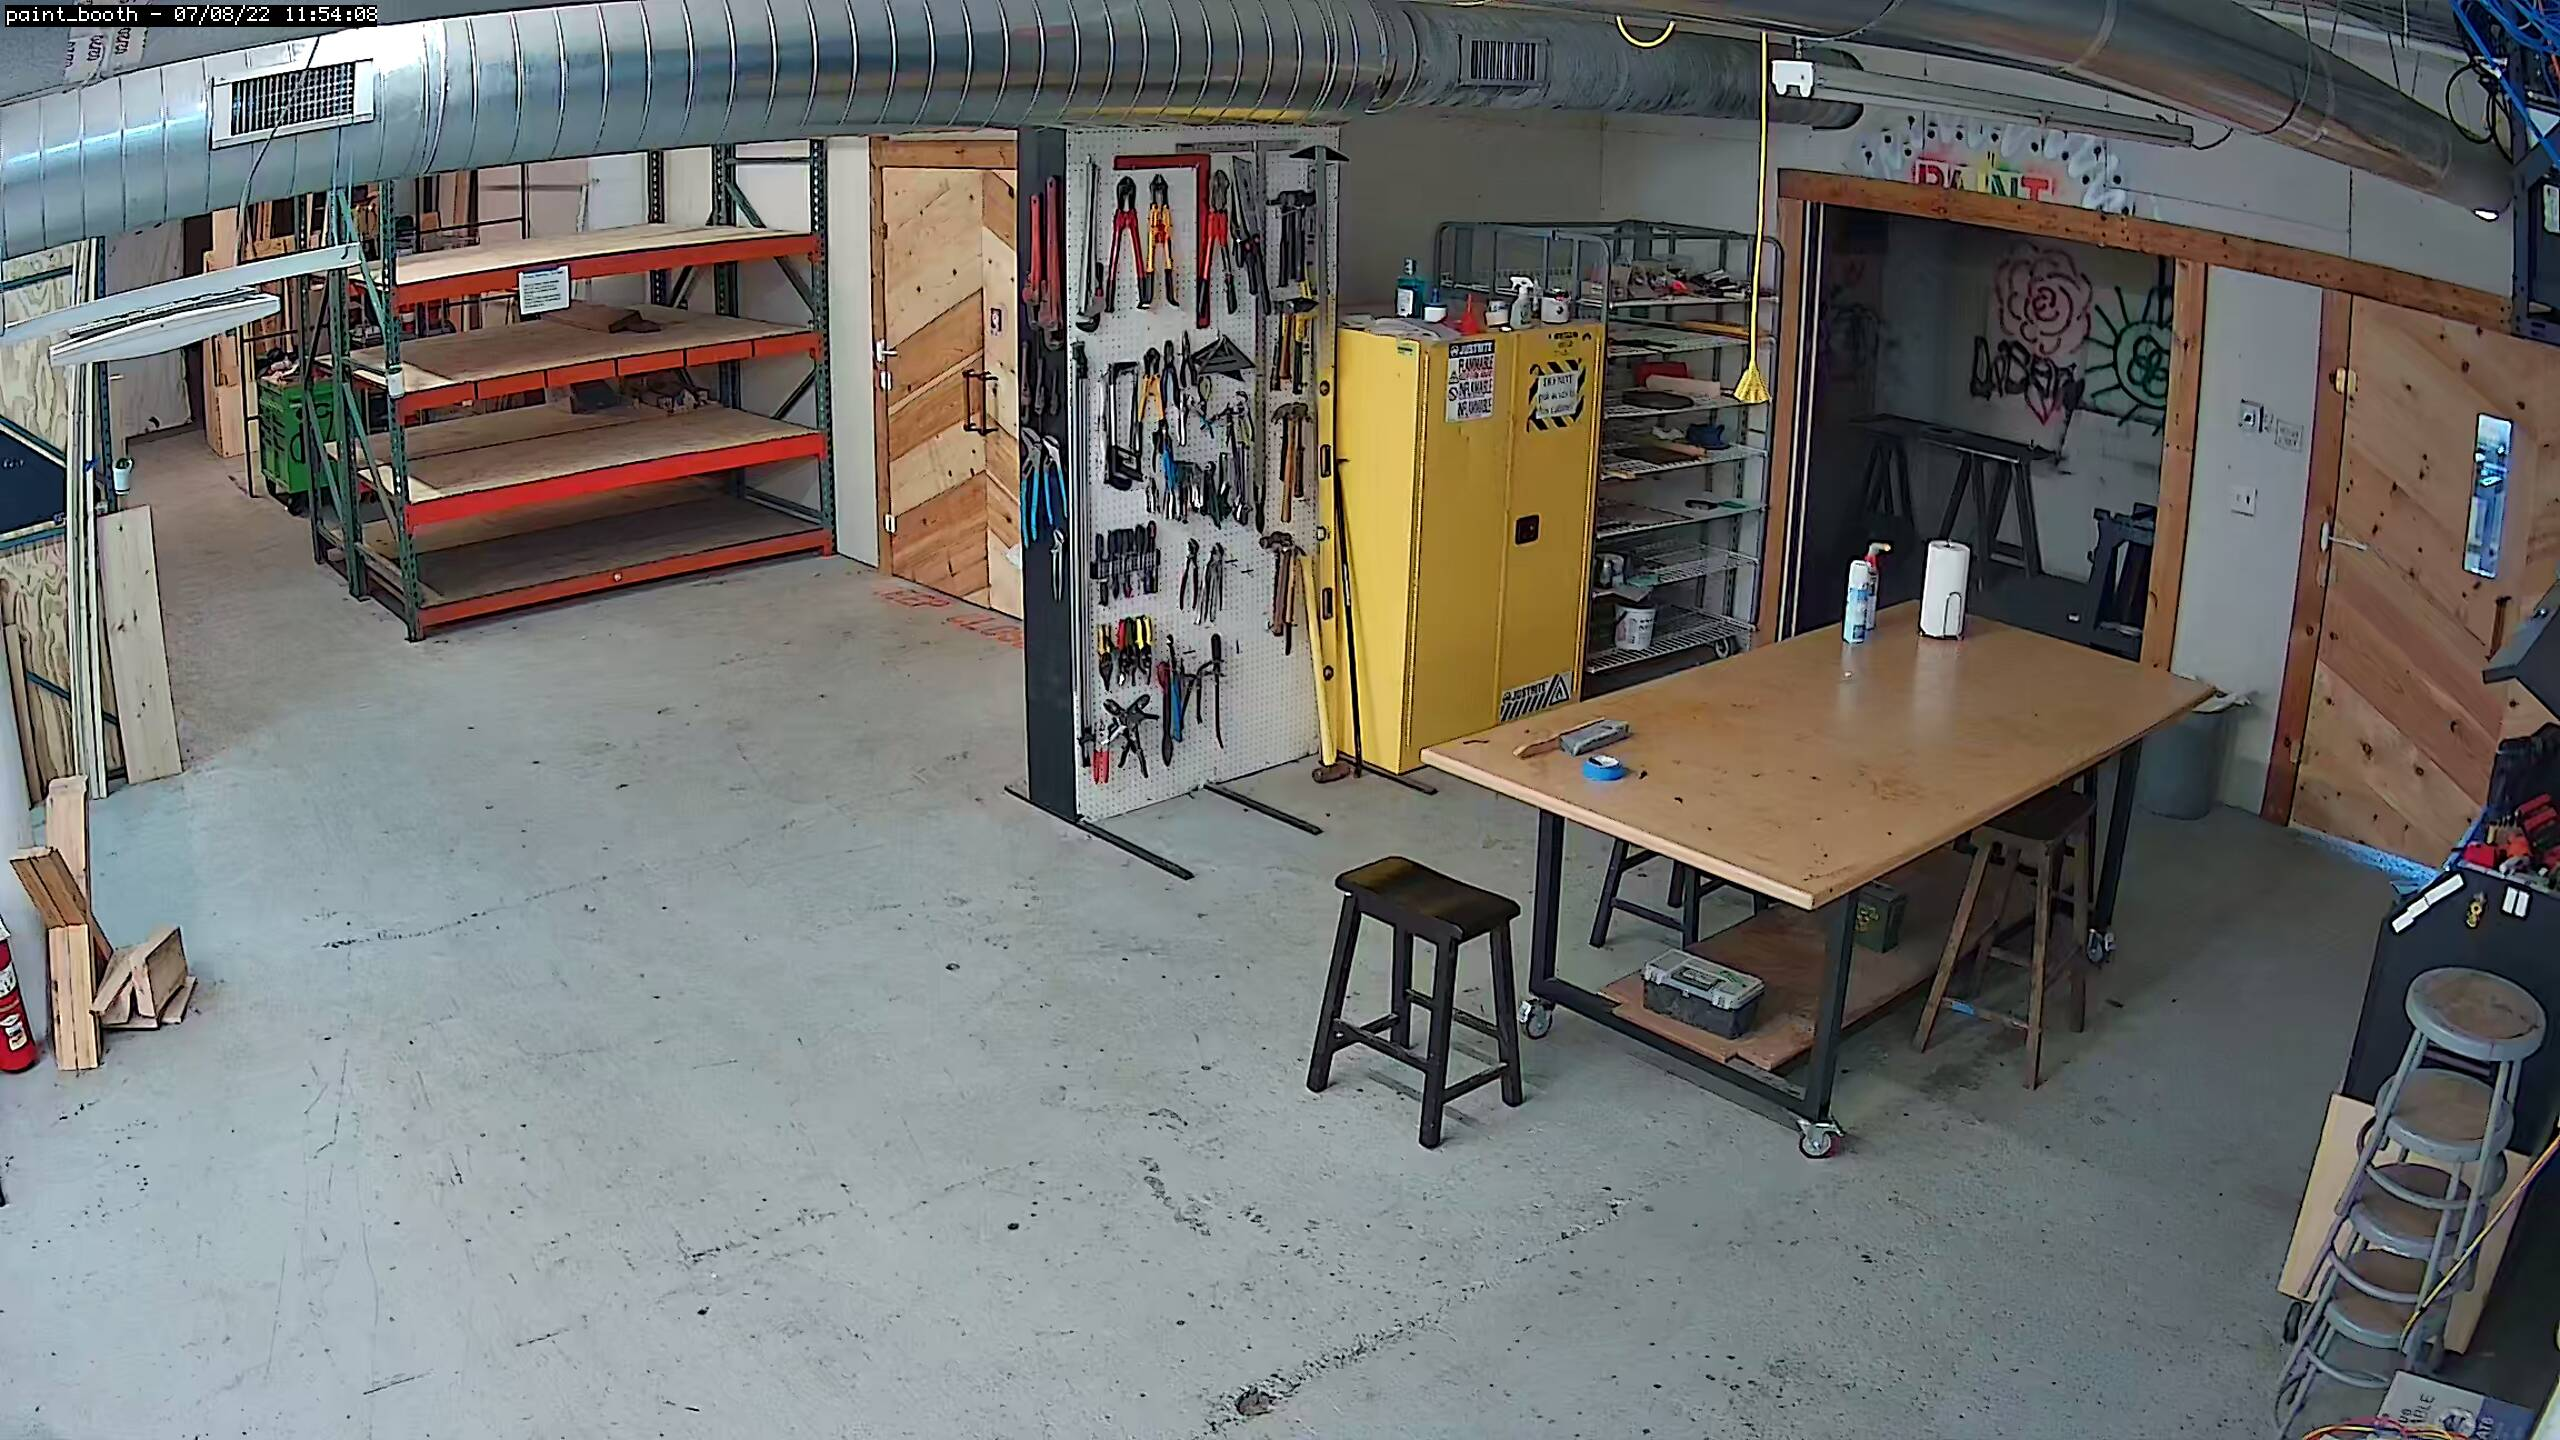 Paint Booth Camera